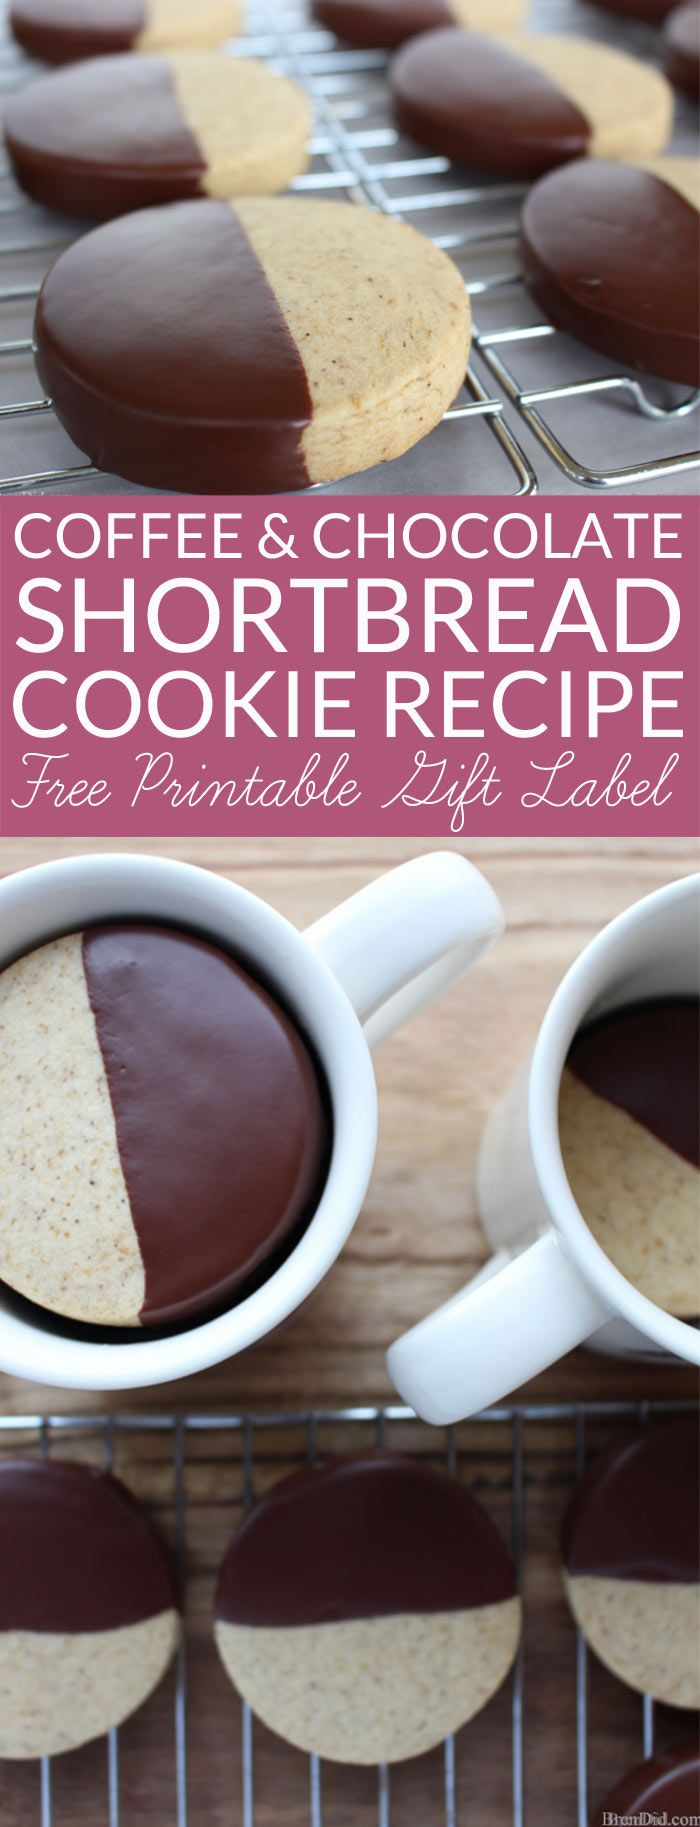 Coffee and Chocolate Shortbread Recipe